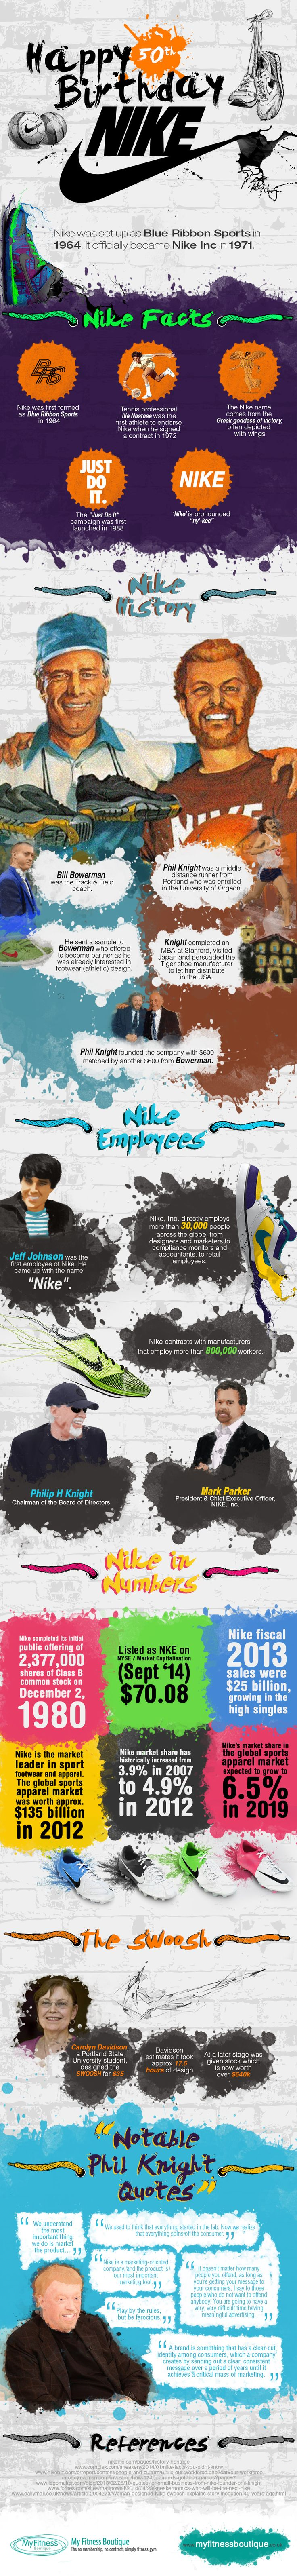 Nike is the market leader when it comes to sports apparel. Originally set up as Blue Ribbon Sports in 1964 by Phil Knight and Bill Bowerman, the company changed its name to 'Nike' in 1971. This year the company celebrates their 50th year. To being the most successful sports apparel company in the world from just an idea that Phil Knight had in college,the company has come a long way. This infographic from My Fitness Boutique looks at some of the history of the company and its set-up. It ...